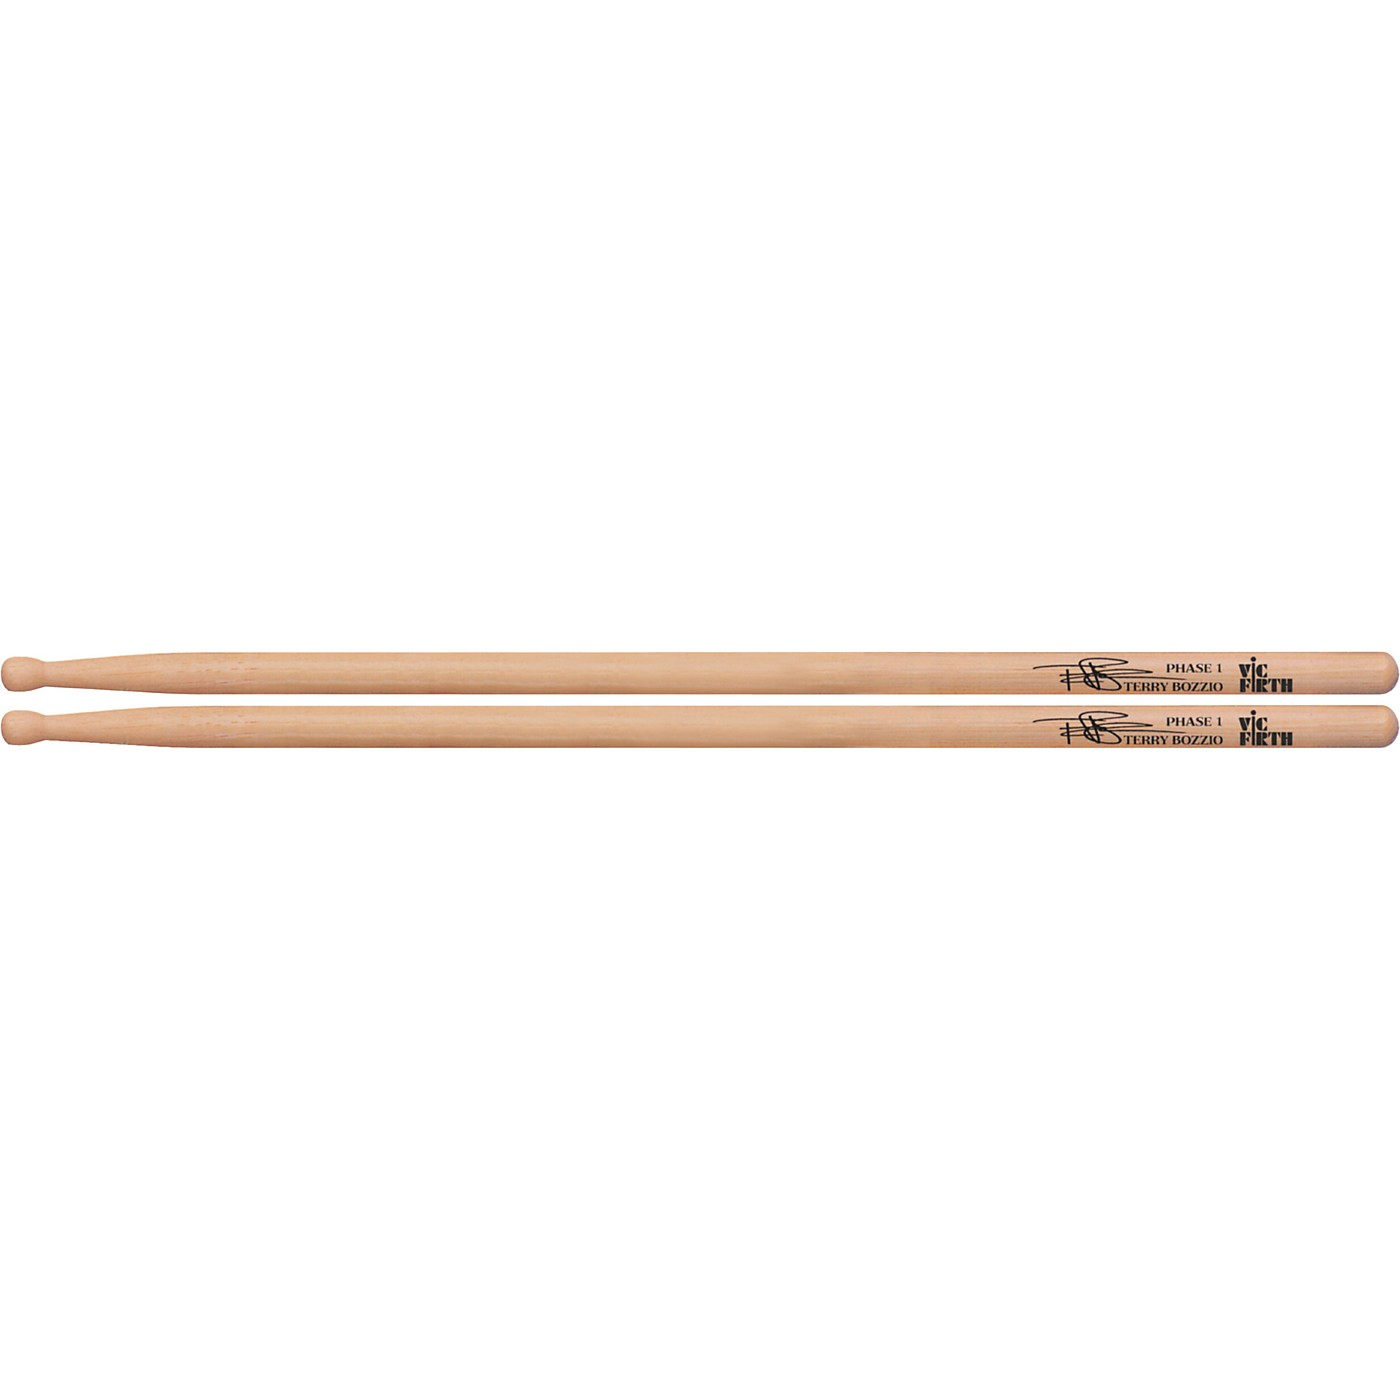 Vic Firth Terry Bozzio Signature Drumsticks Phase 1 thumbnail